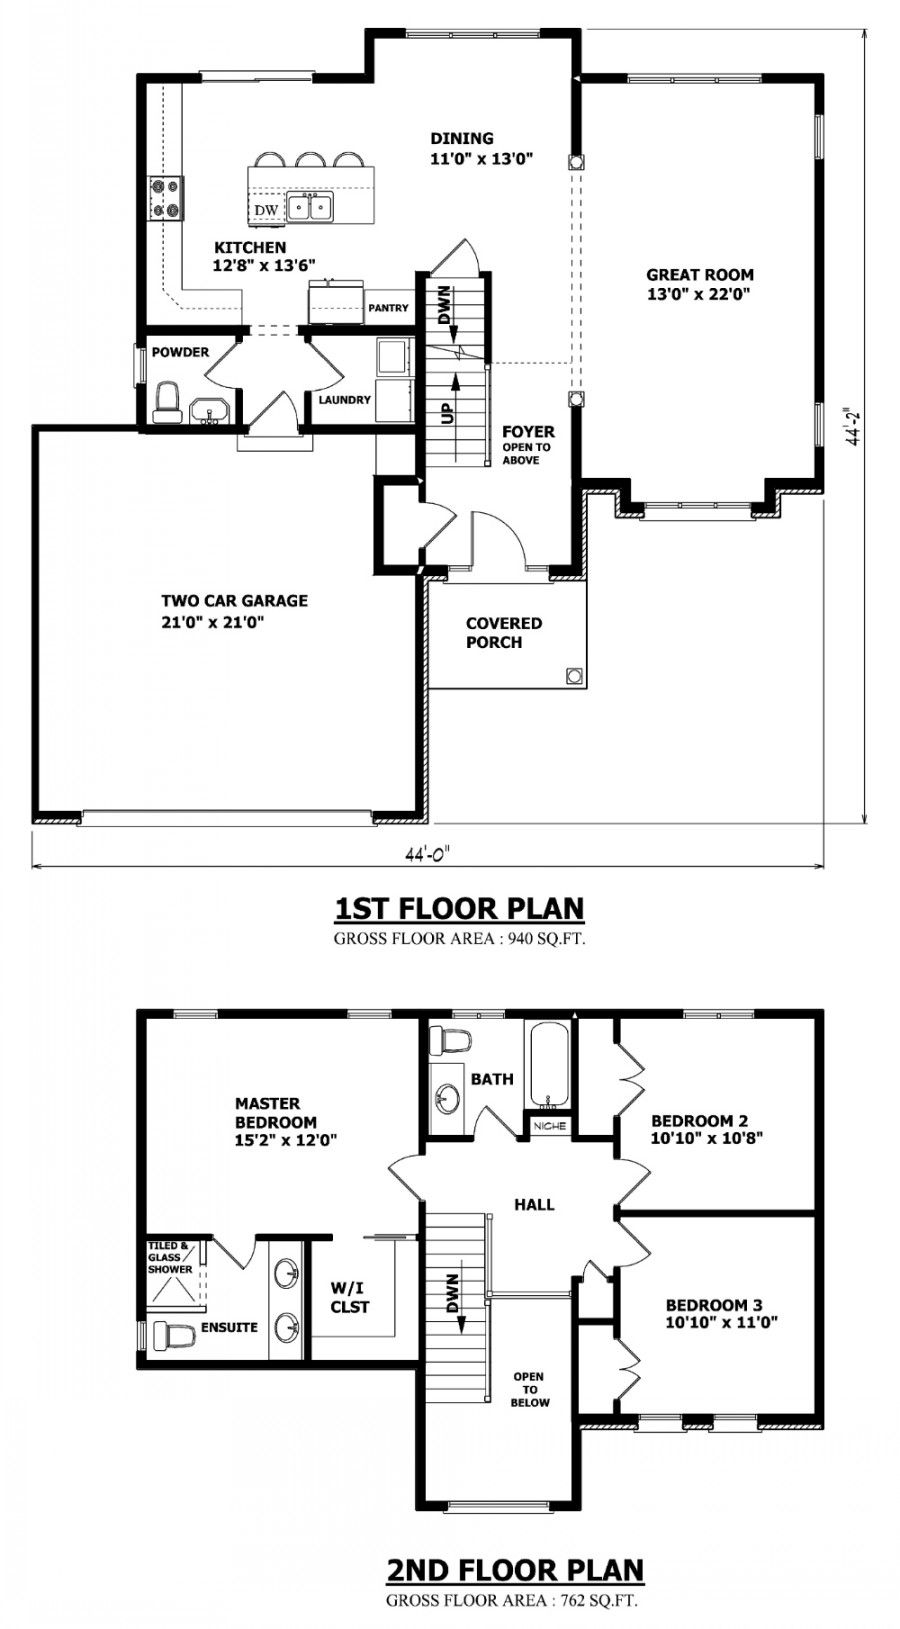 HOME DESIGNS Custom House Plans Stock House Plans amp Garage Plans